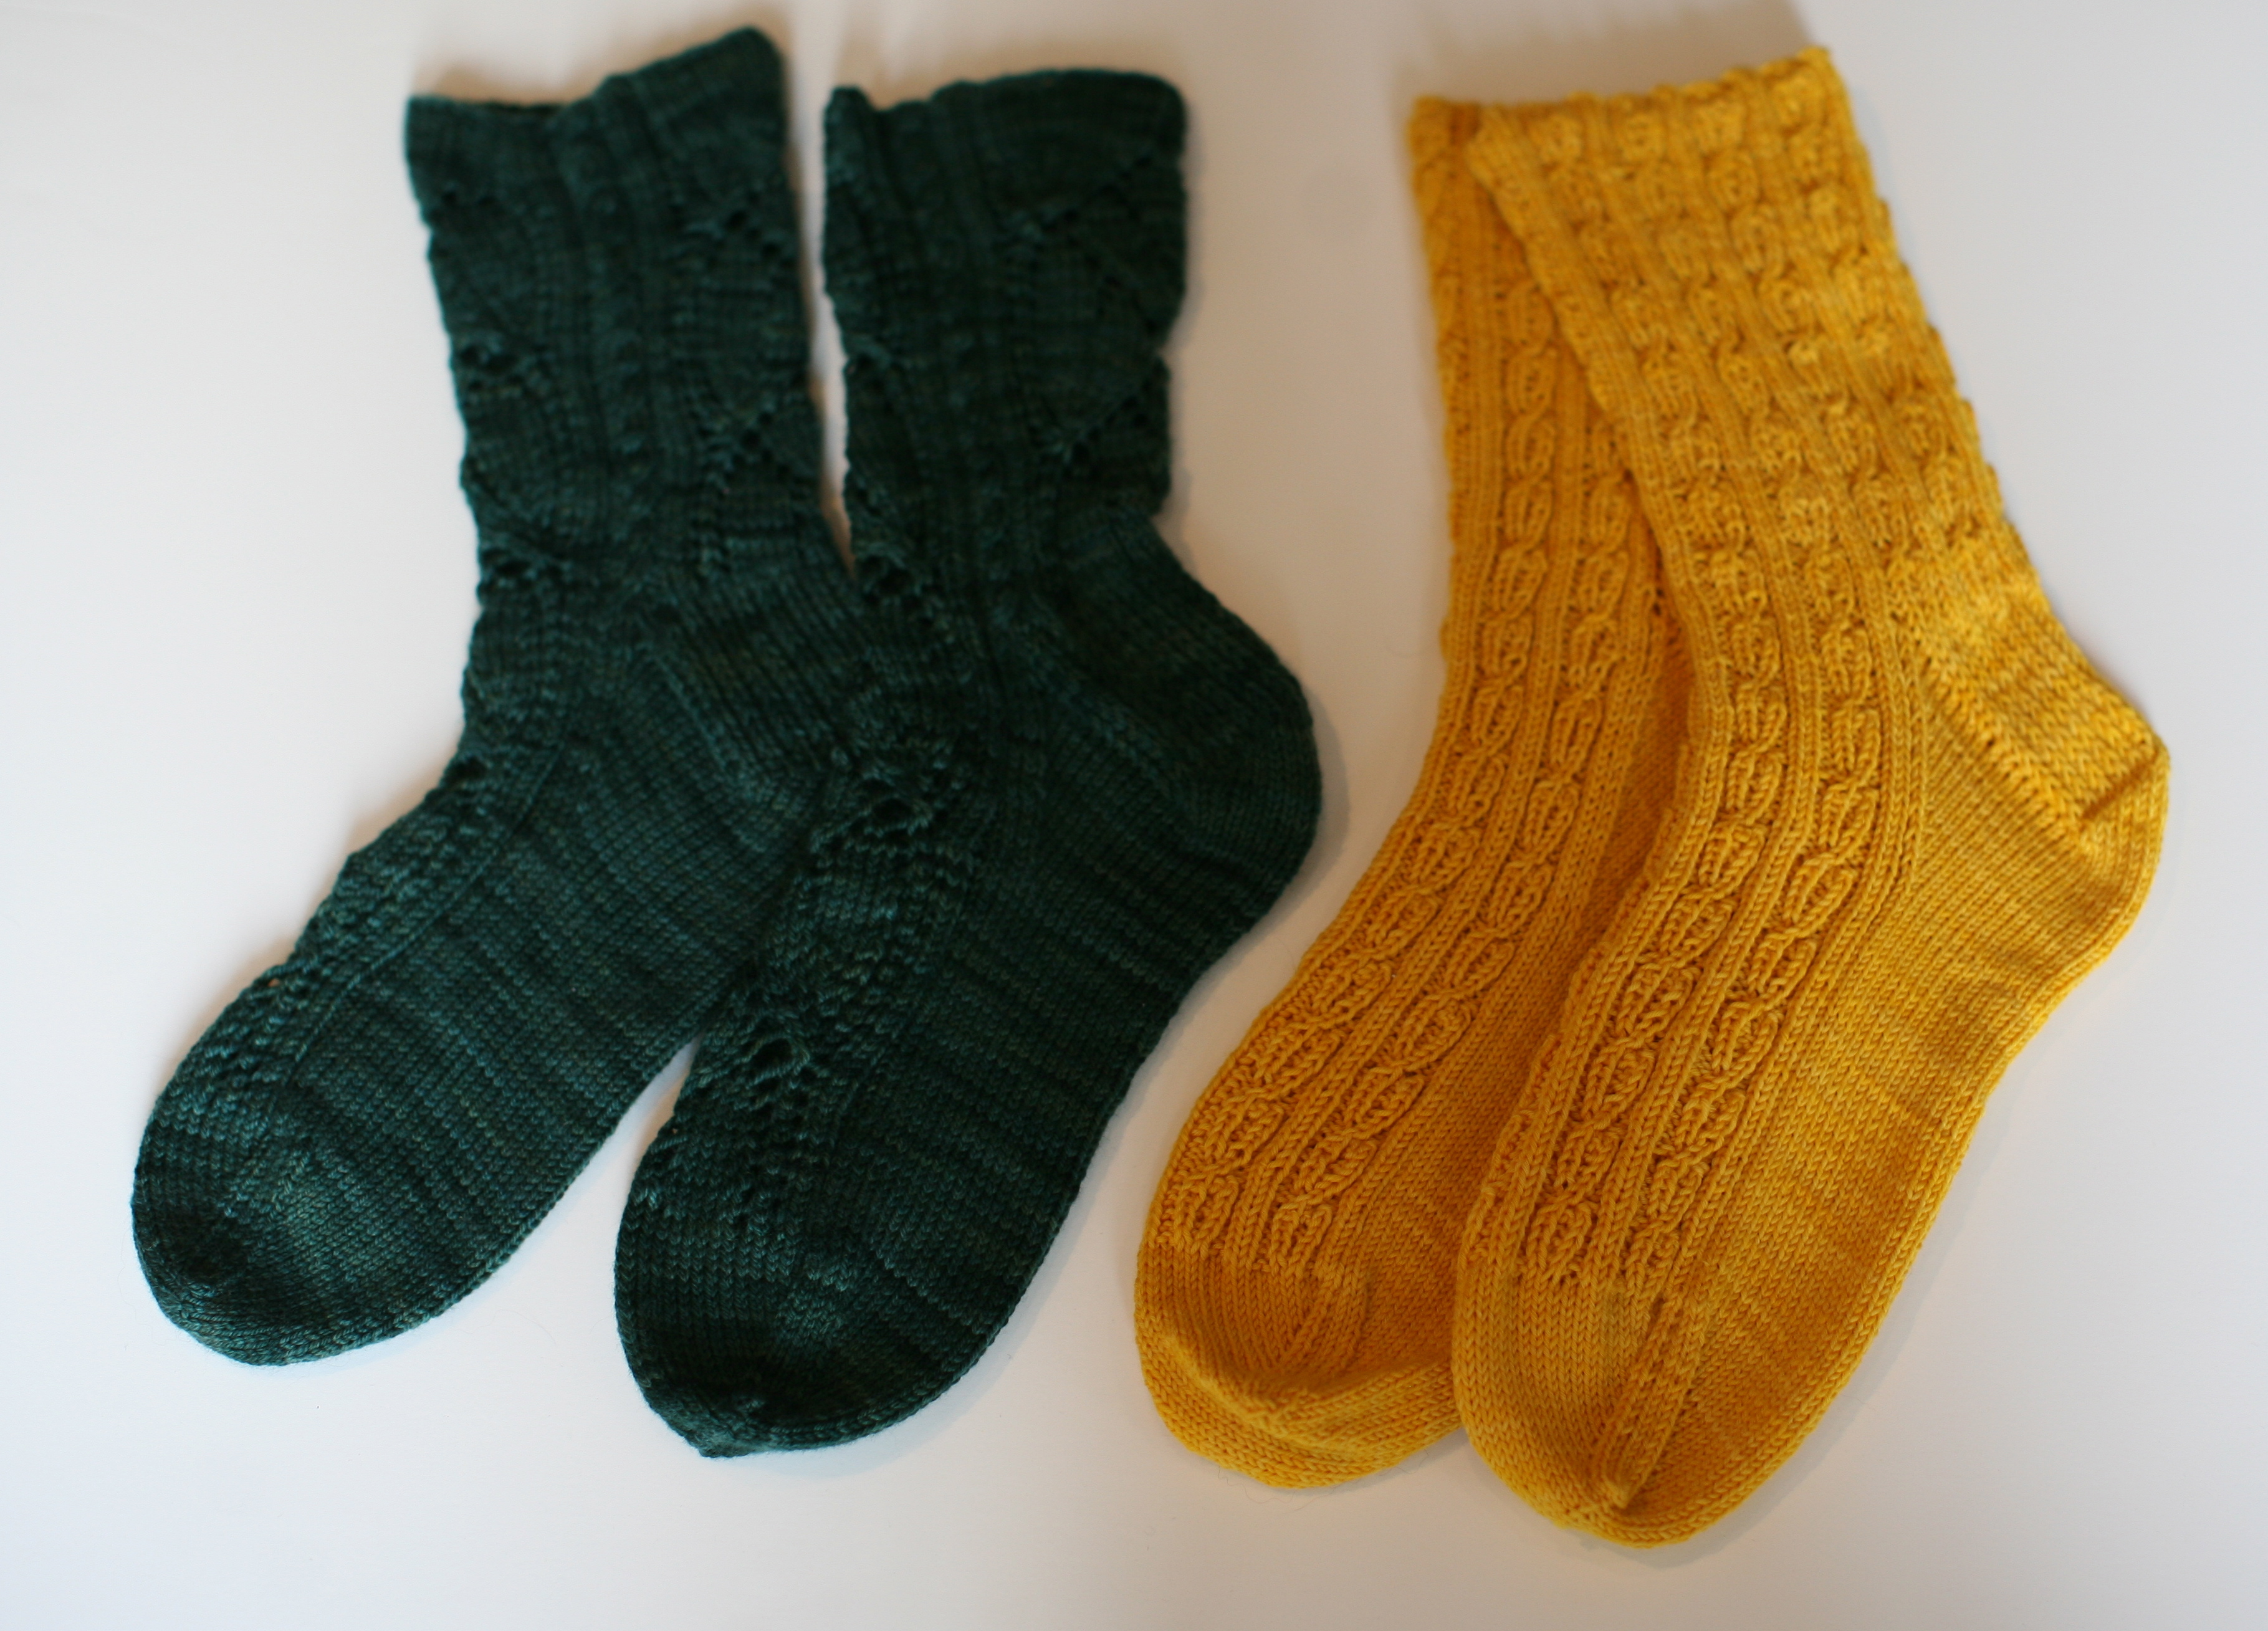 Knitting Socks : Wollmeise twisted and purled nyc